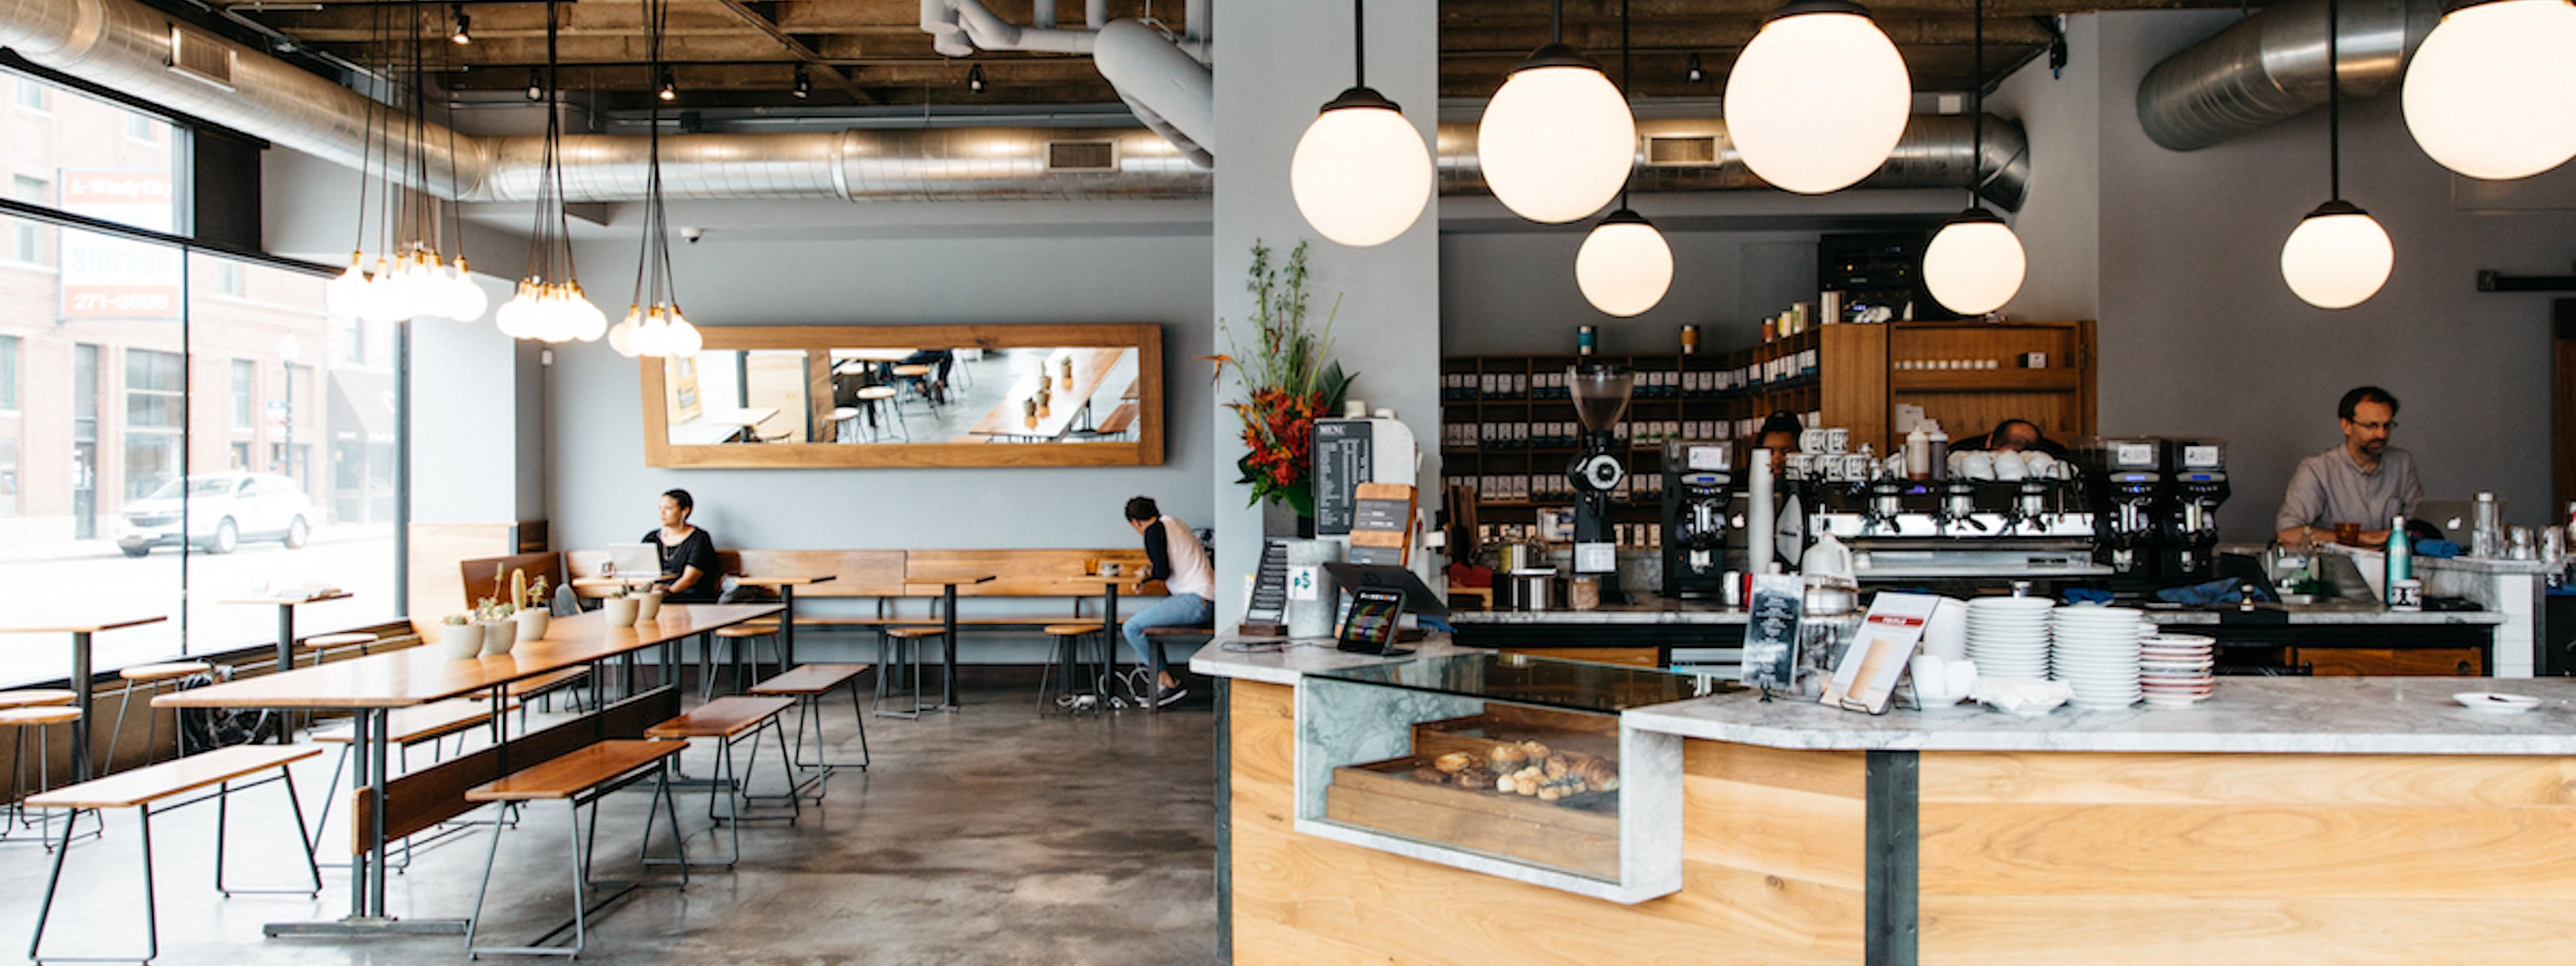 The Best Coffee Shops For Getting Work Done - Chicago - The Infatuation